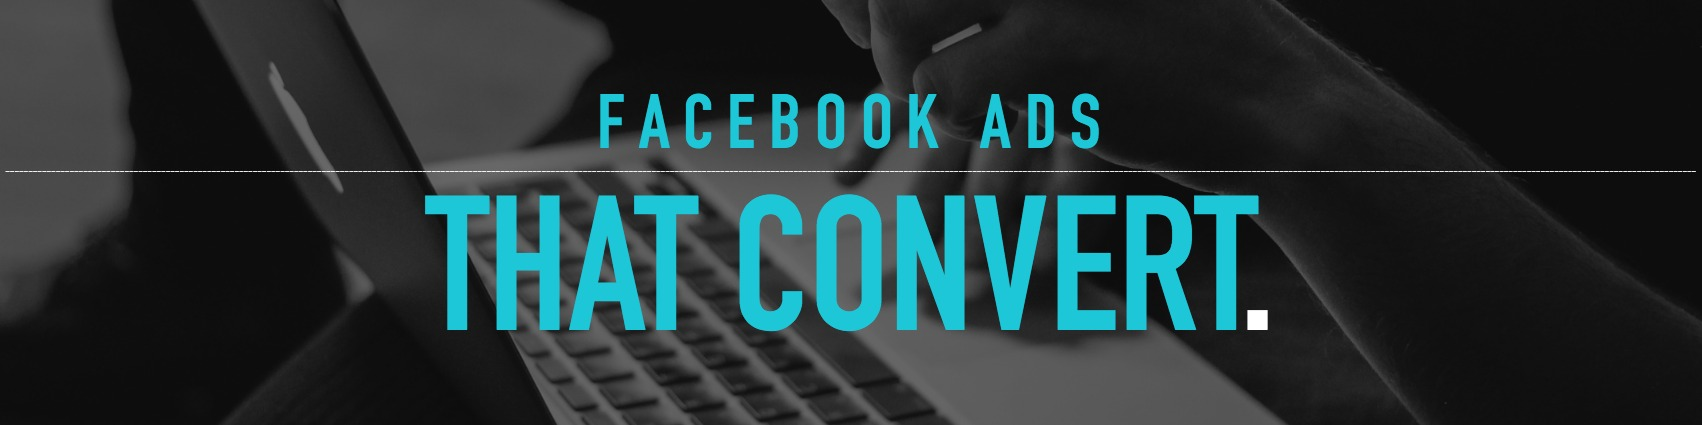 FACEBOOK ADS THAT CONVERT